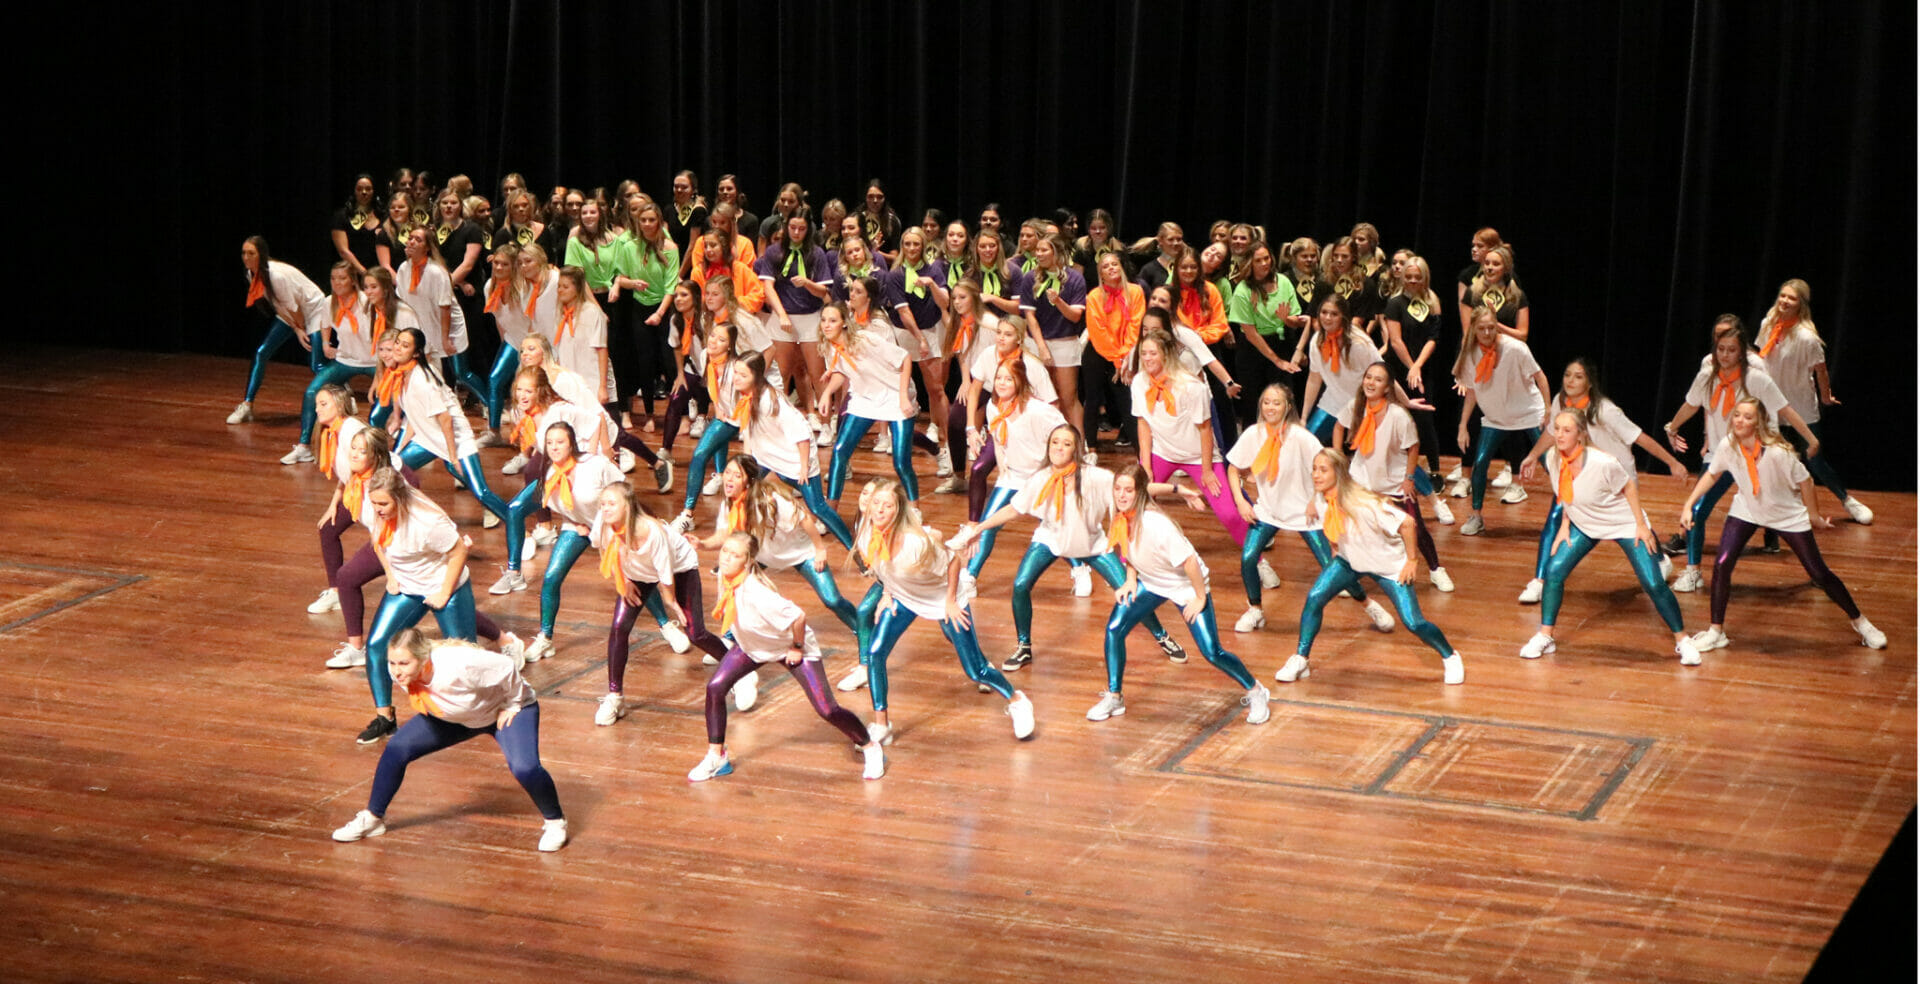 Sorority Dance Competition Slated to Help Abused, Neglected Children